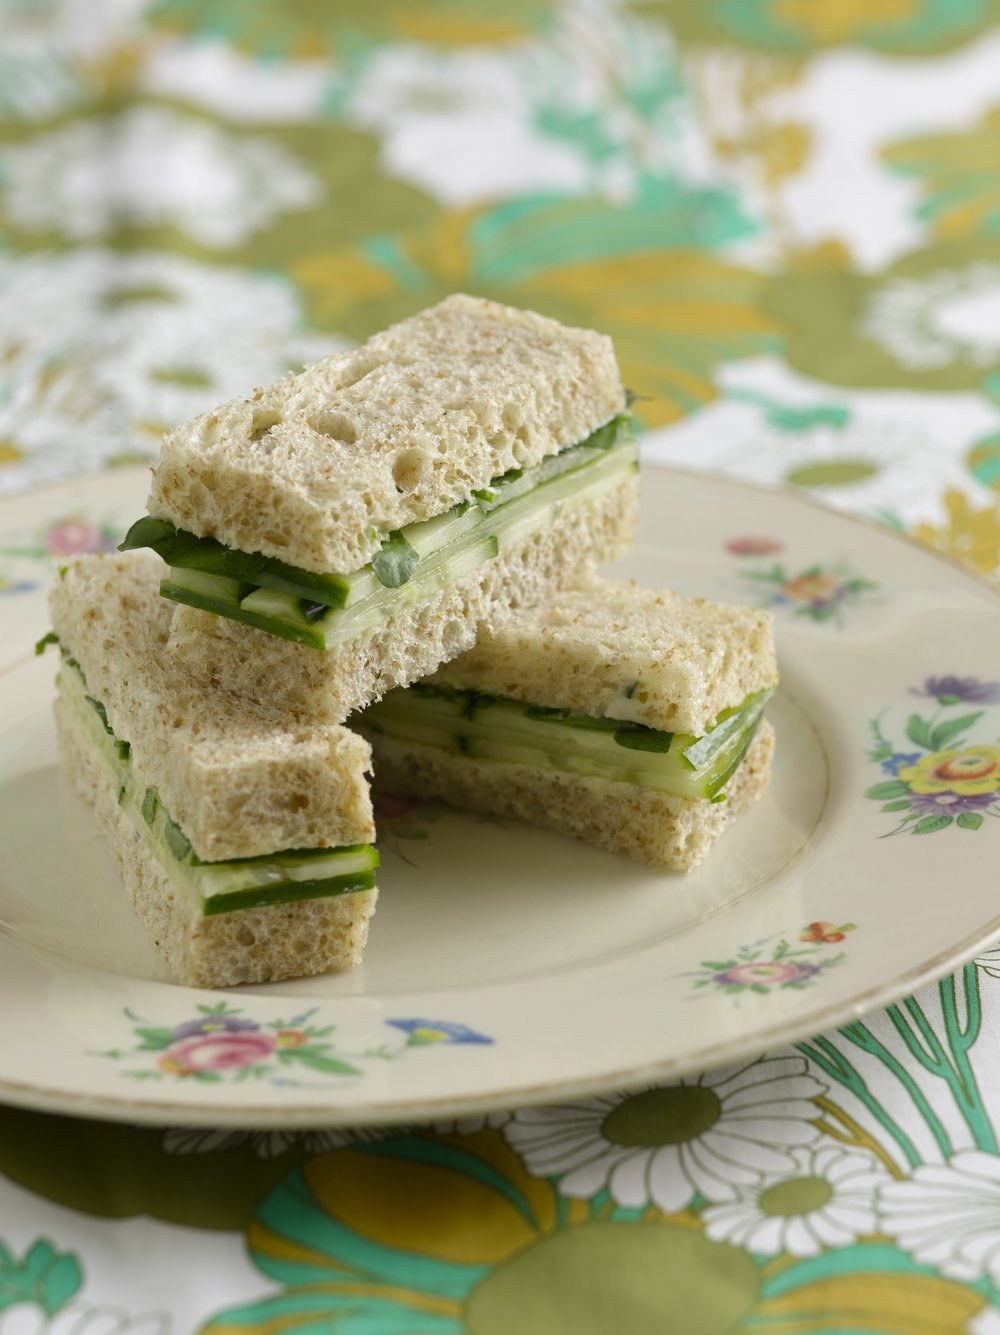 Cucumber and Watercress Tea Sandwiches, with lemon-chive butter on whole wheat bread.